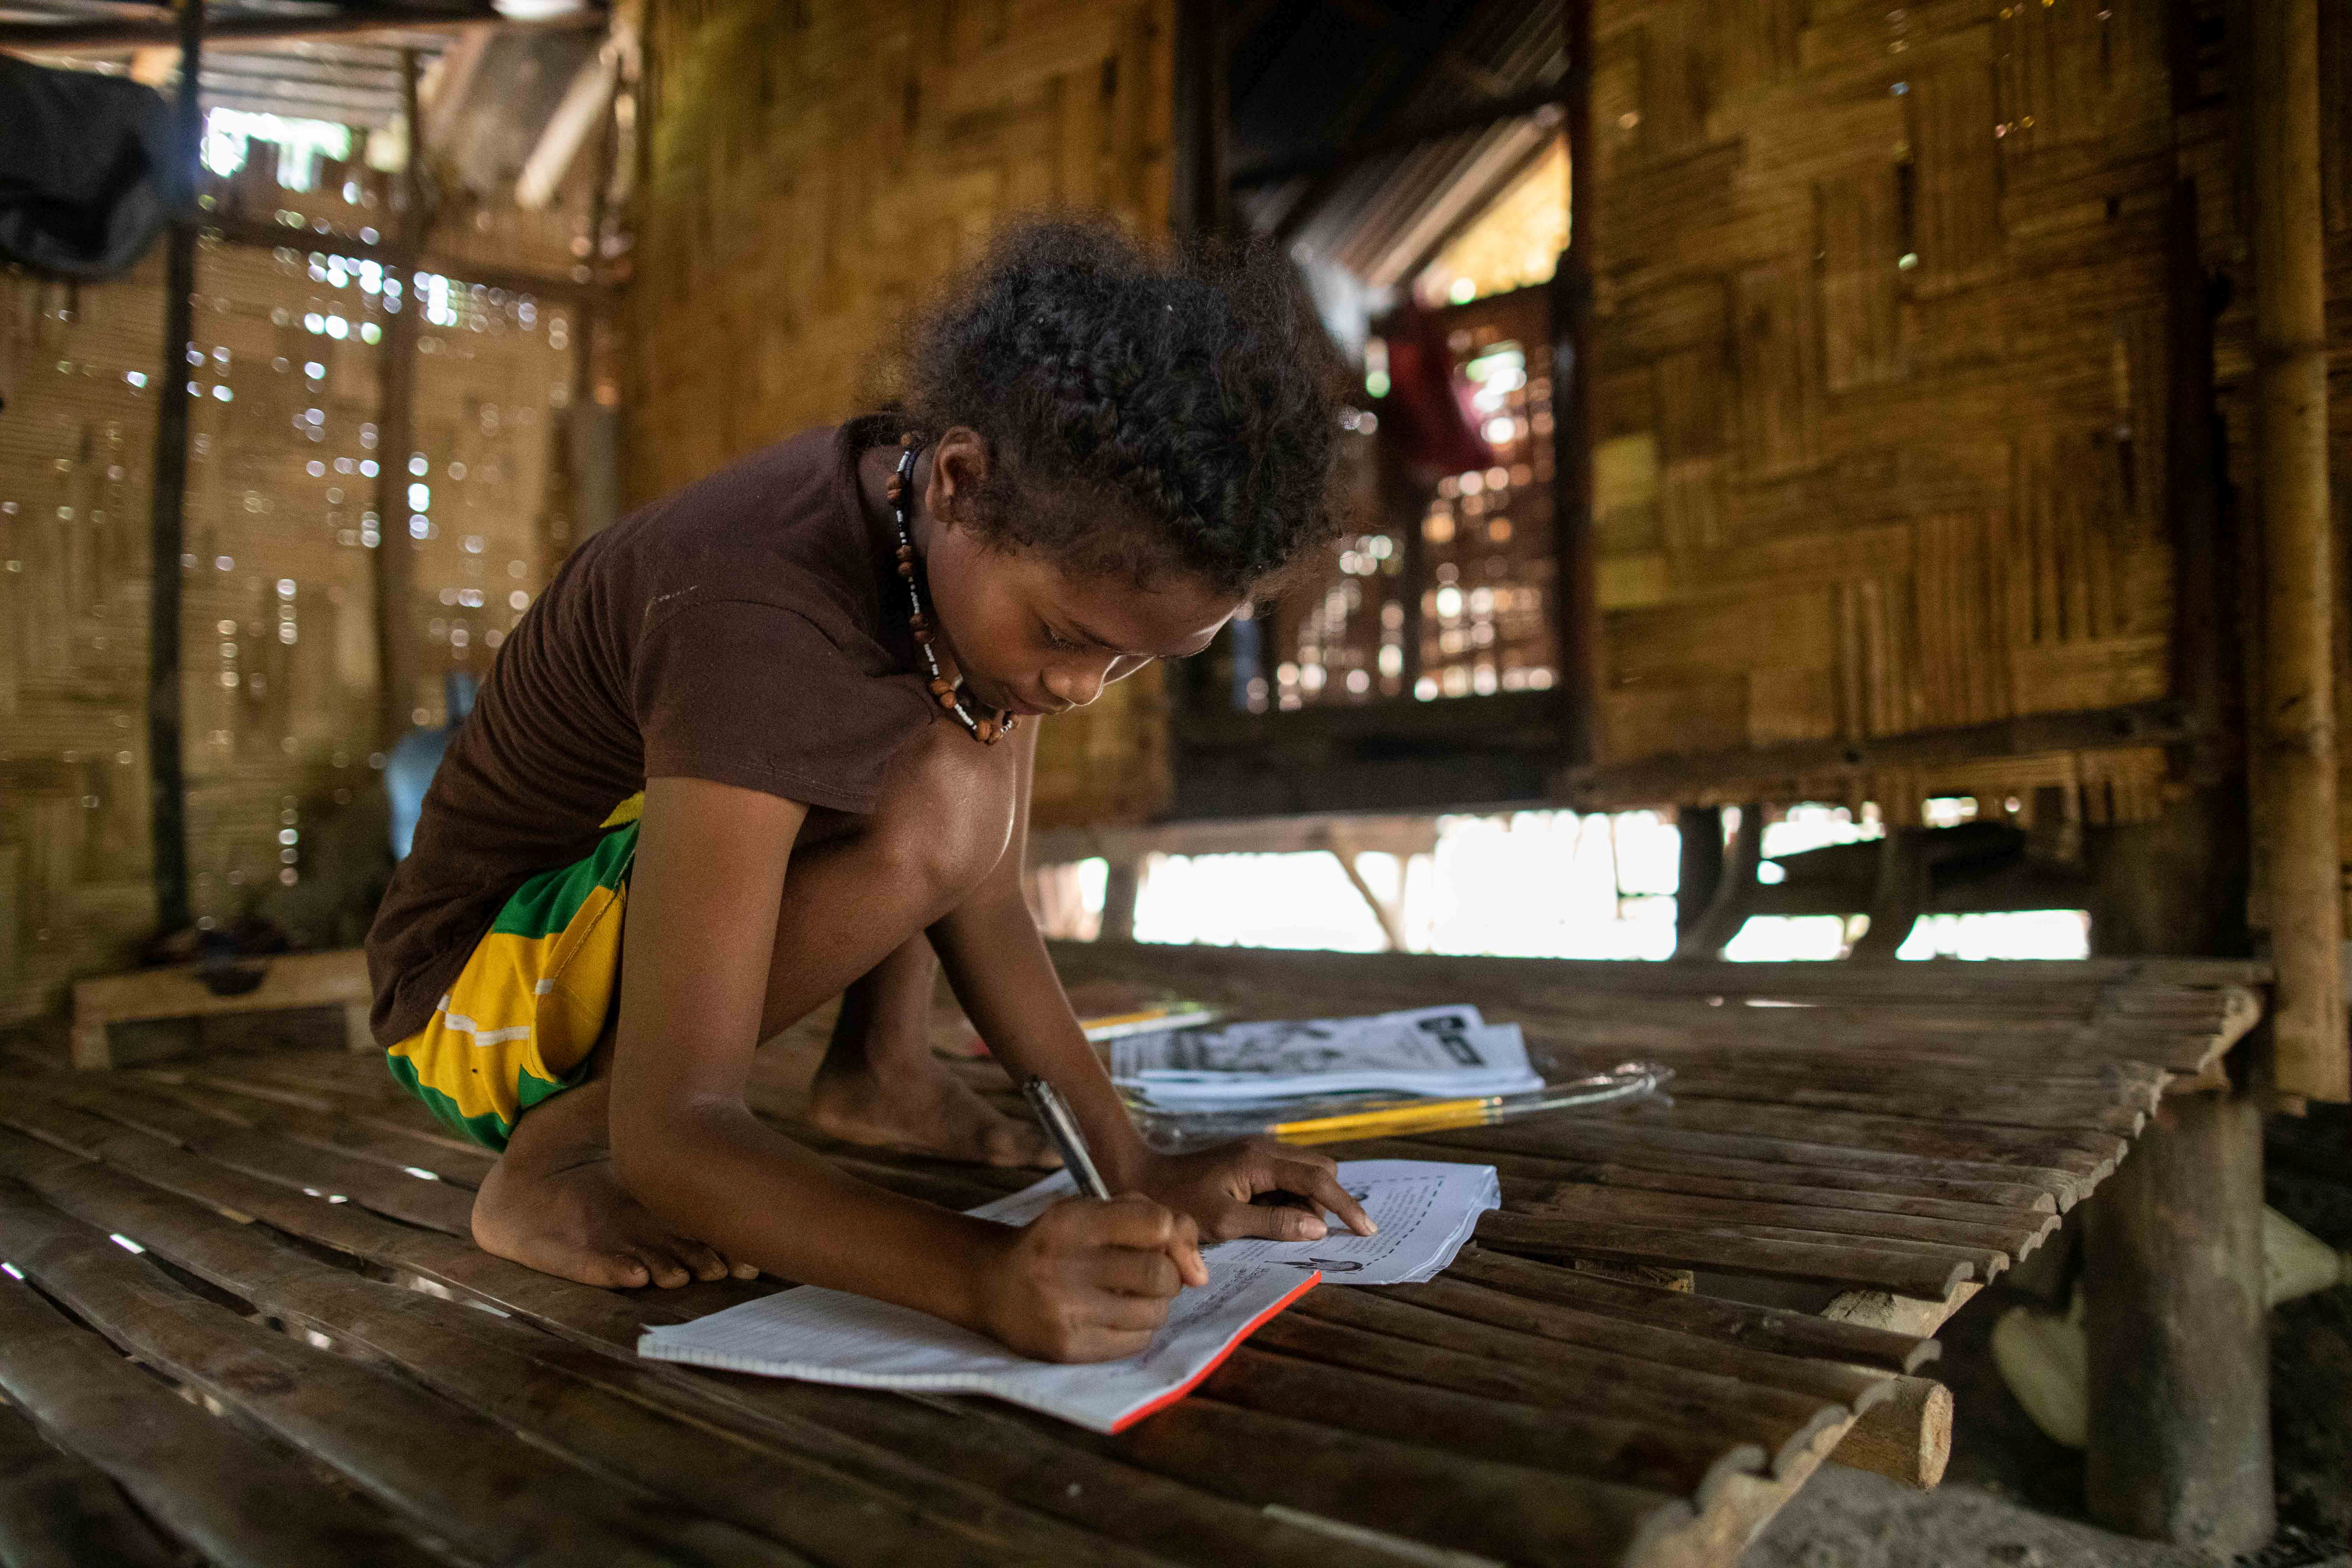 Seventh grade student Abigail Sibal, 13, works on her modules at home after attending a session at the makeshift rickshaw distance learning center for the Aeta community in Porac, Pampanga, Philippines, October 12, 2020. REUTERS/Eloisa Lopez - RC2VIJ9ZFYD3